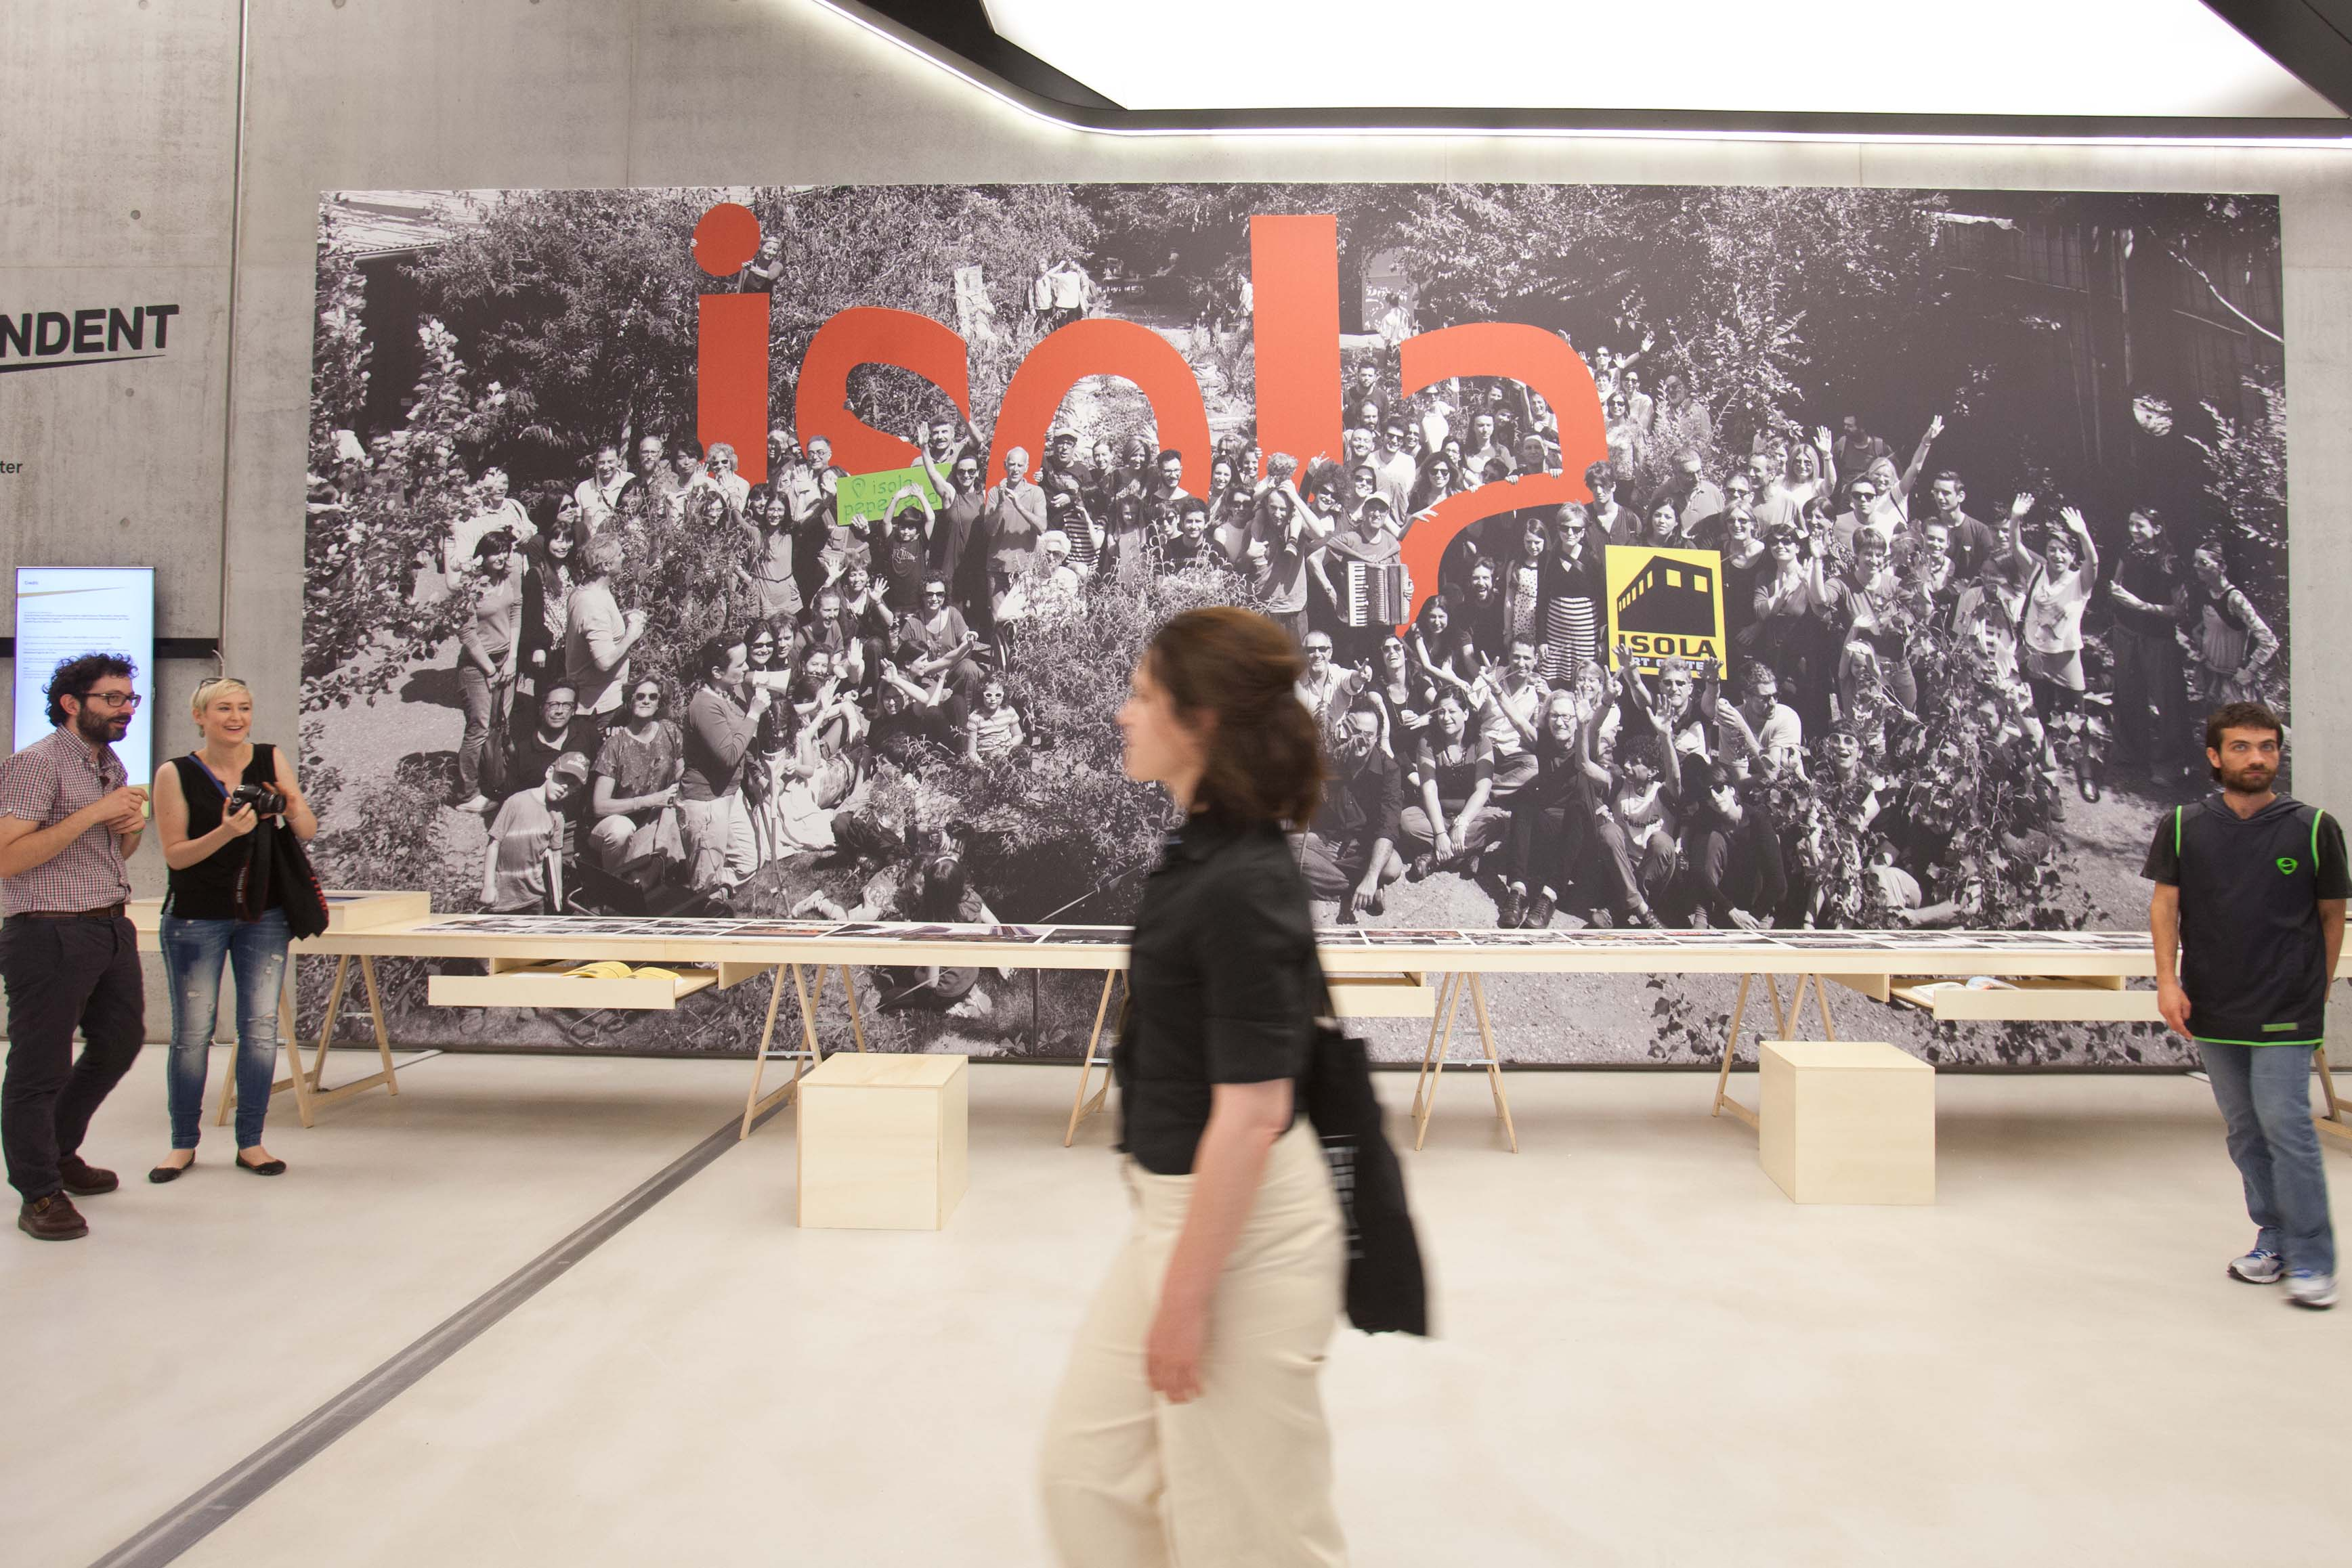 MAXXI_THE_INDEPENDENT_phMusacchioIanniello_8006